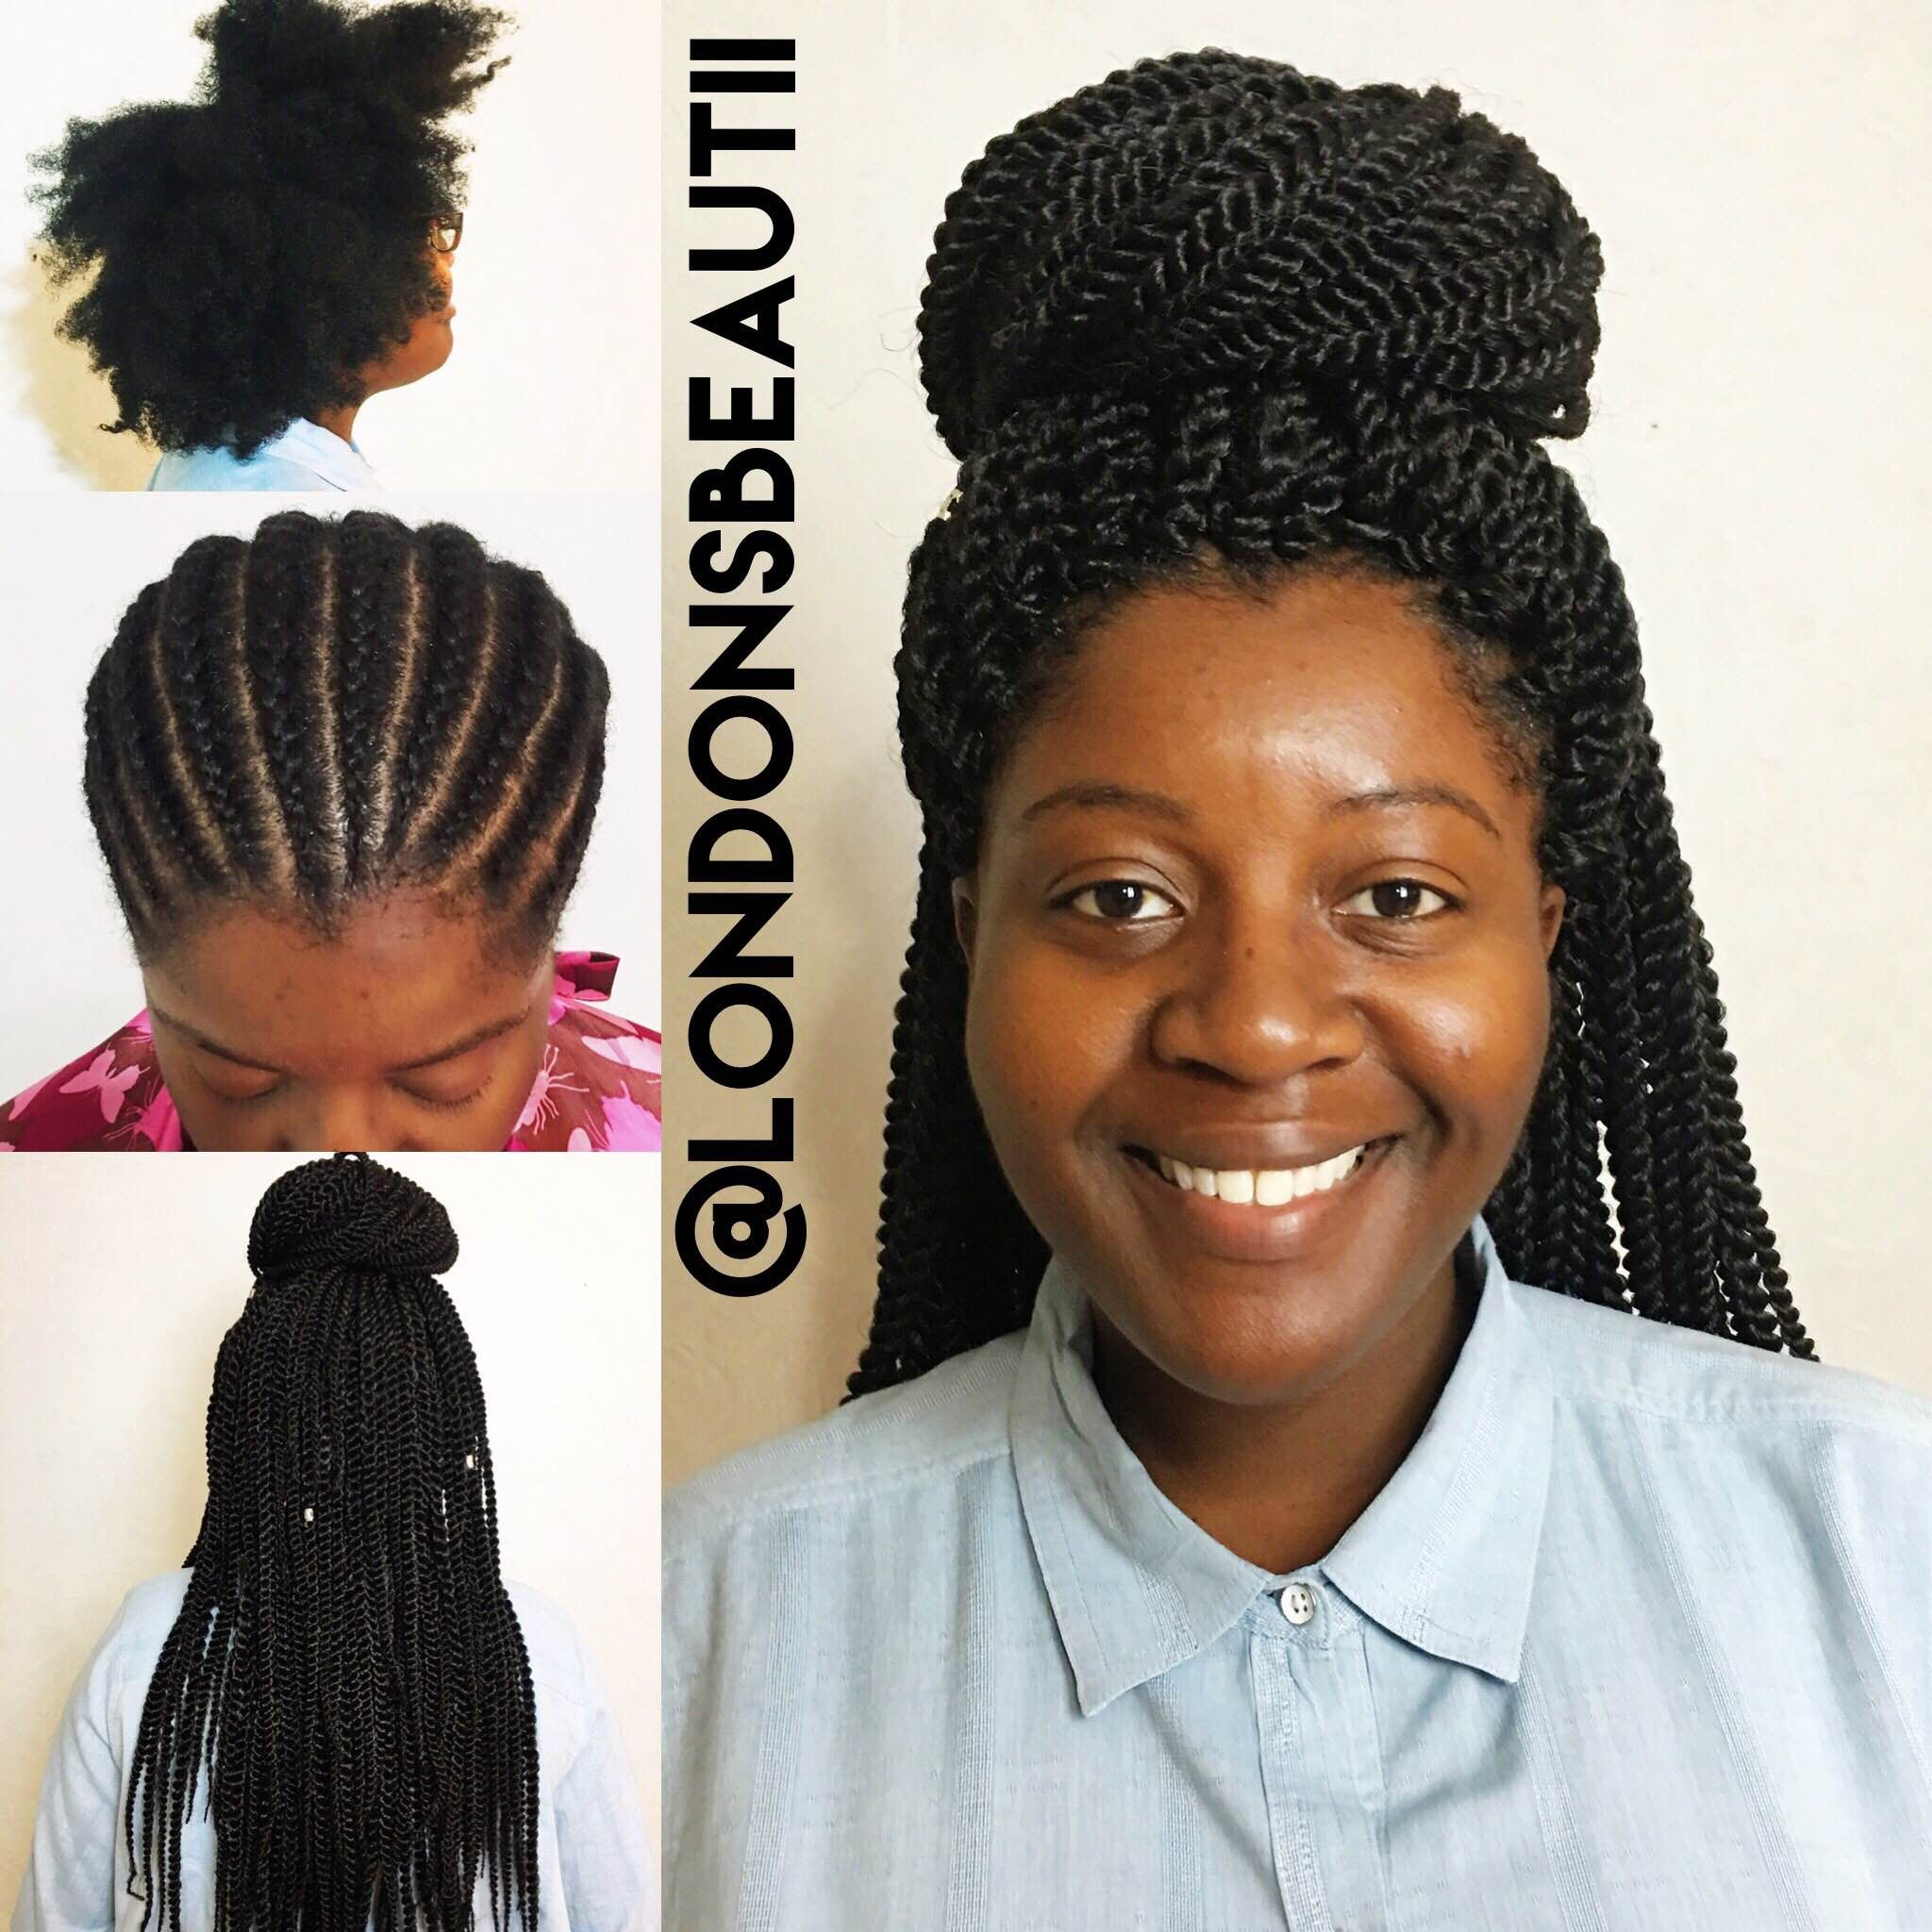 Crochet Braids done by London\'s Beautii in Bowie, Maryland. https ...